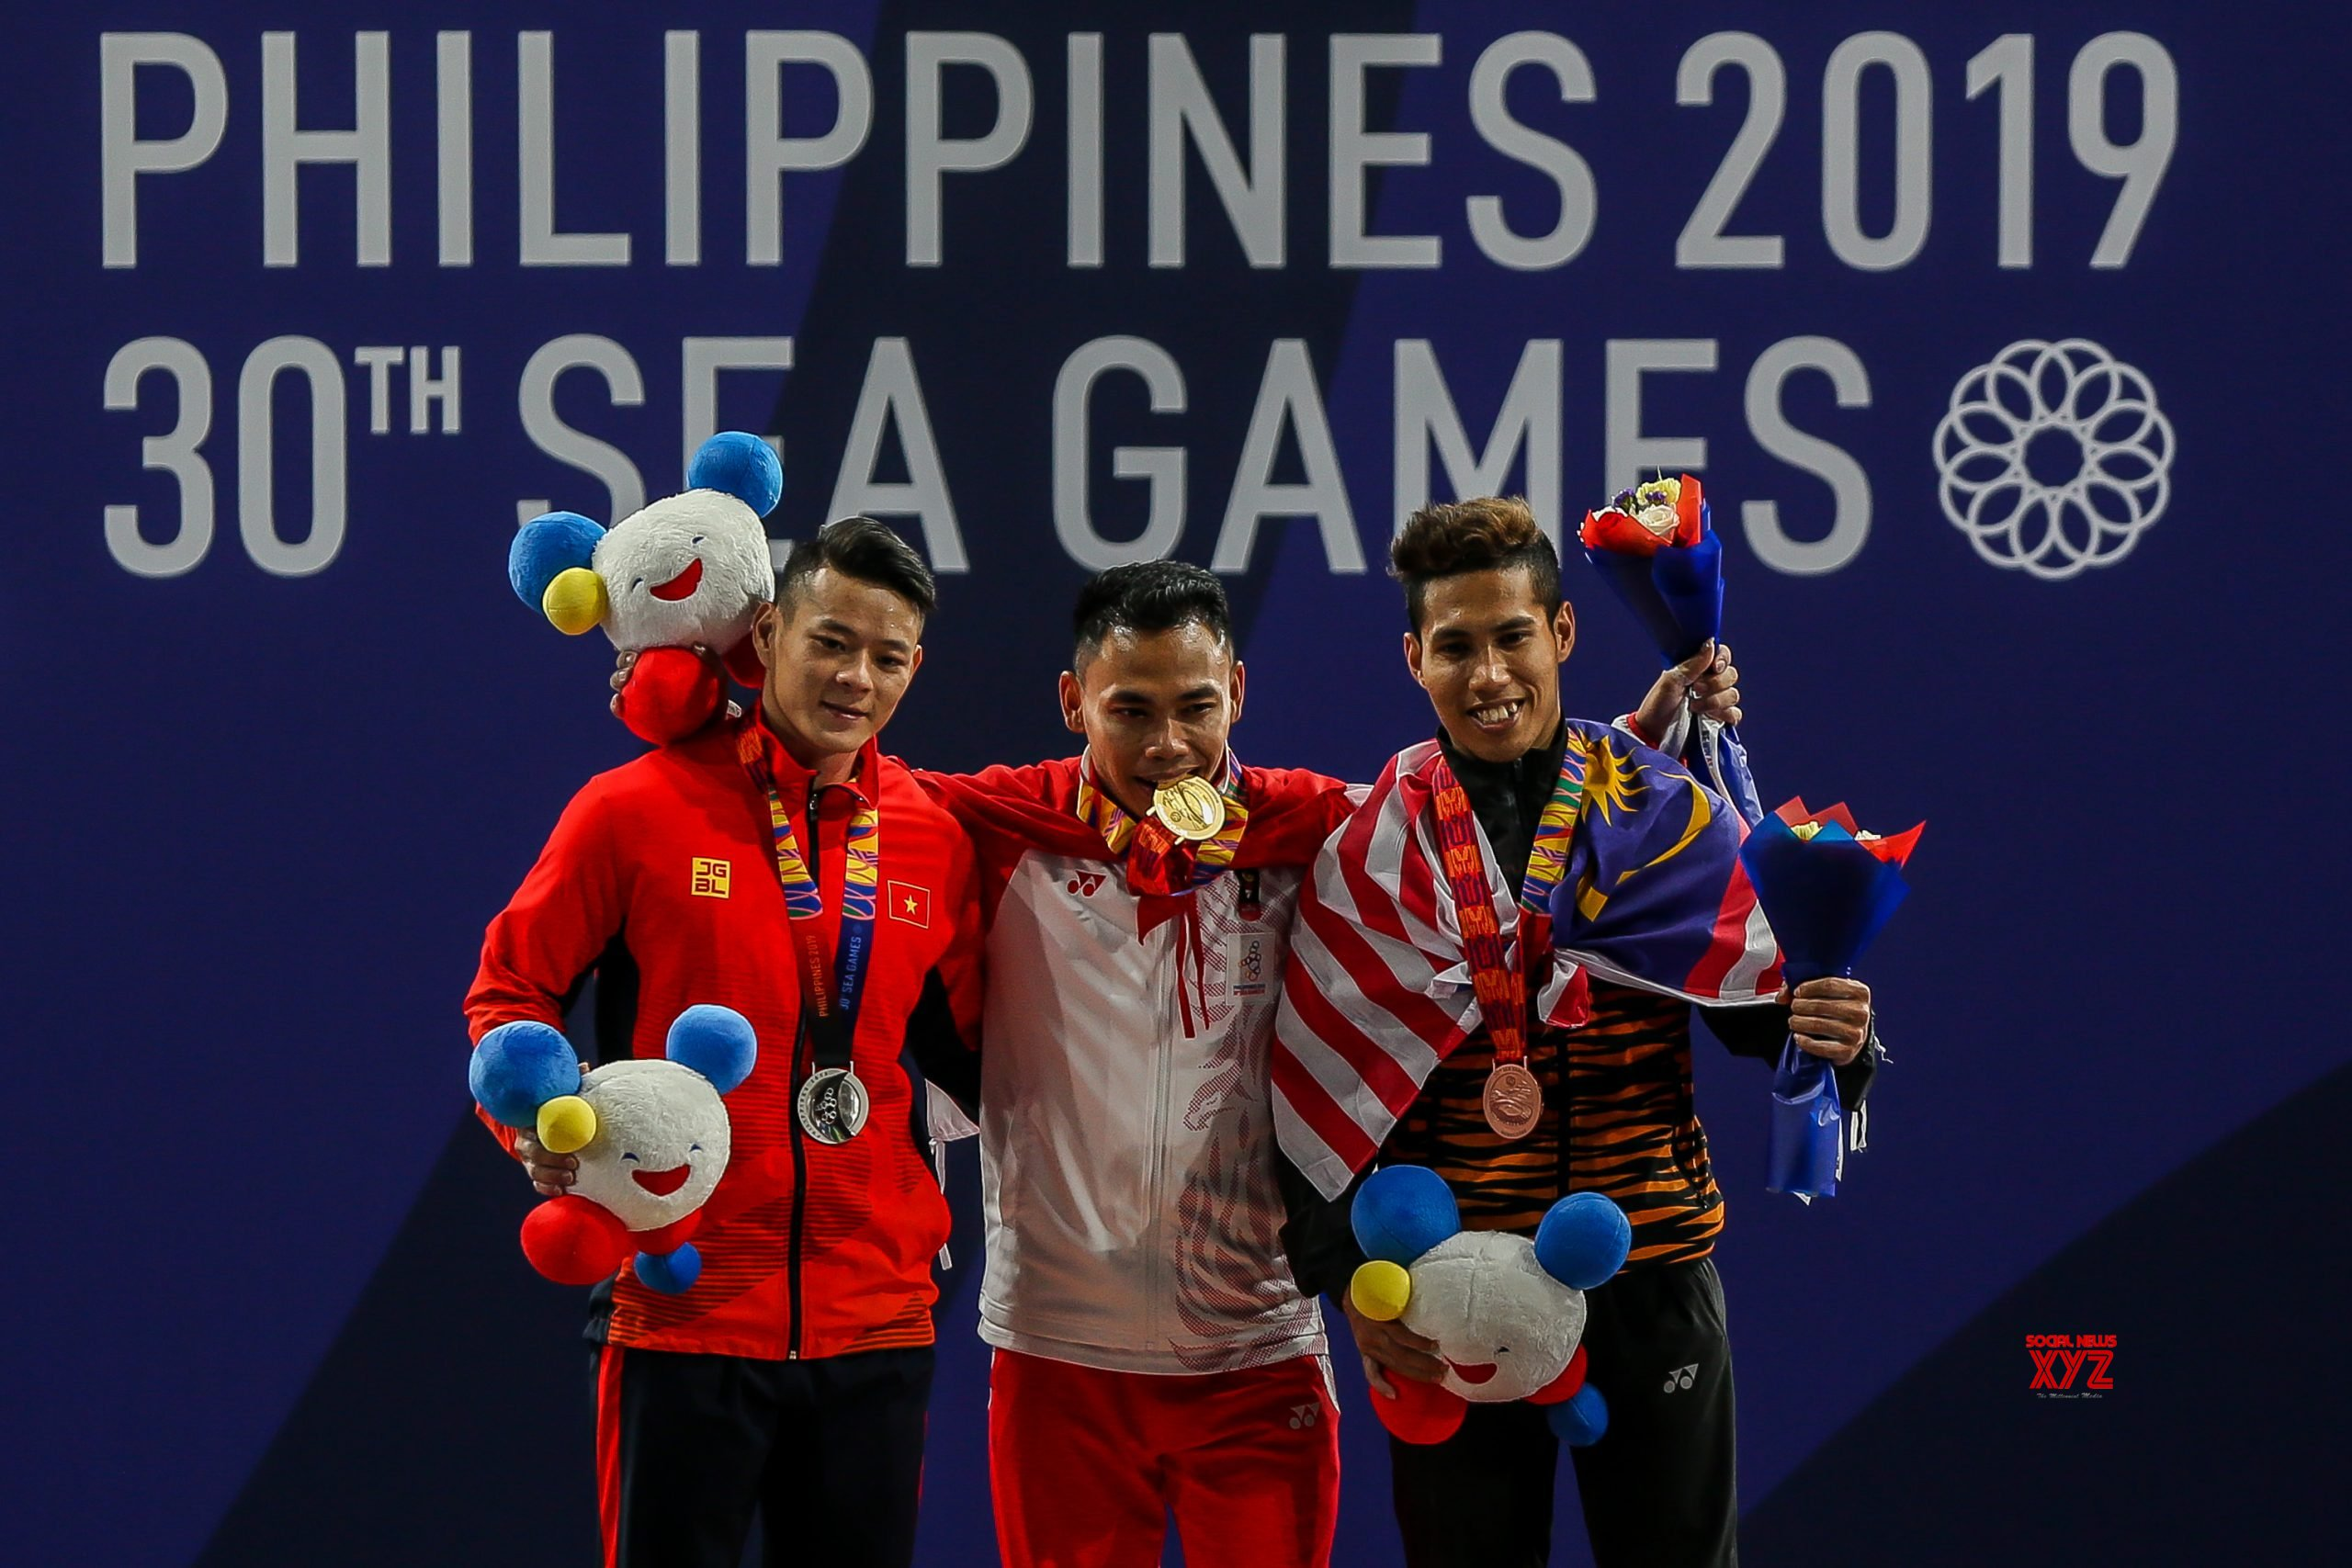 PHILIPPINES - QUEZON CITY - SEA GAMES - WEIGHTLIFTING #Gallery